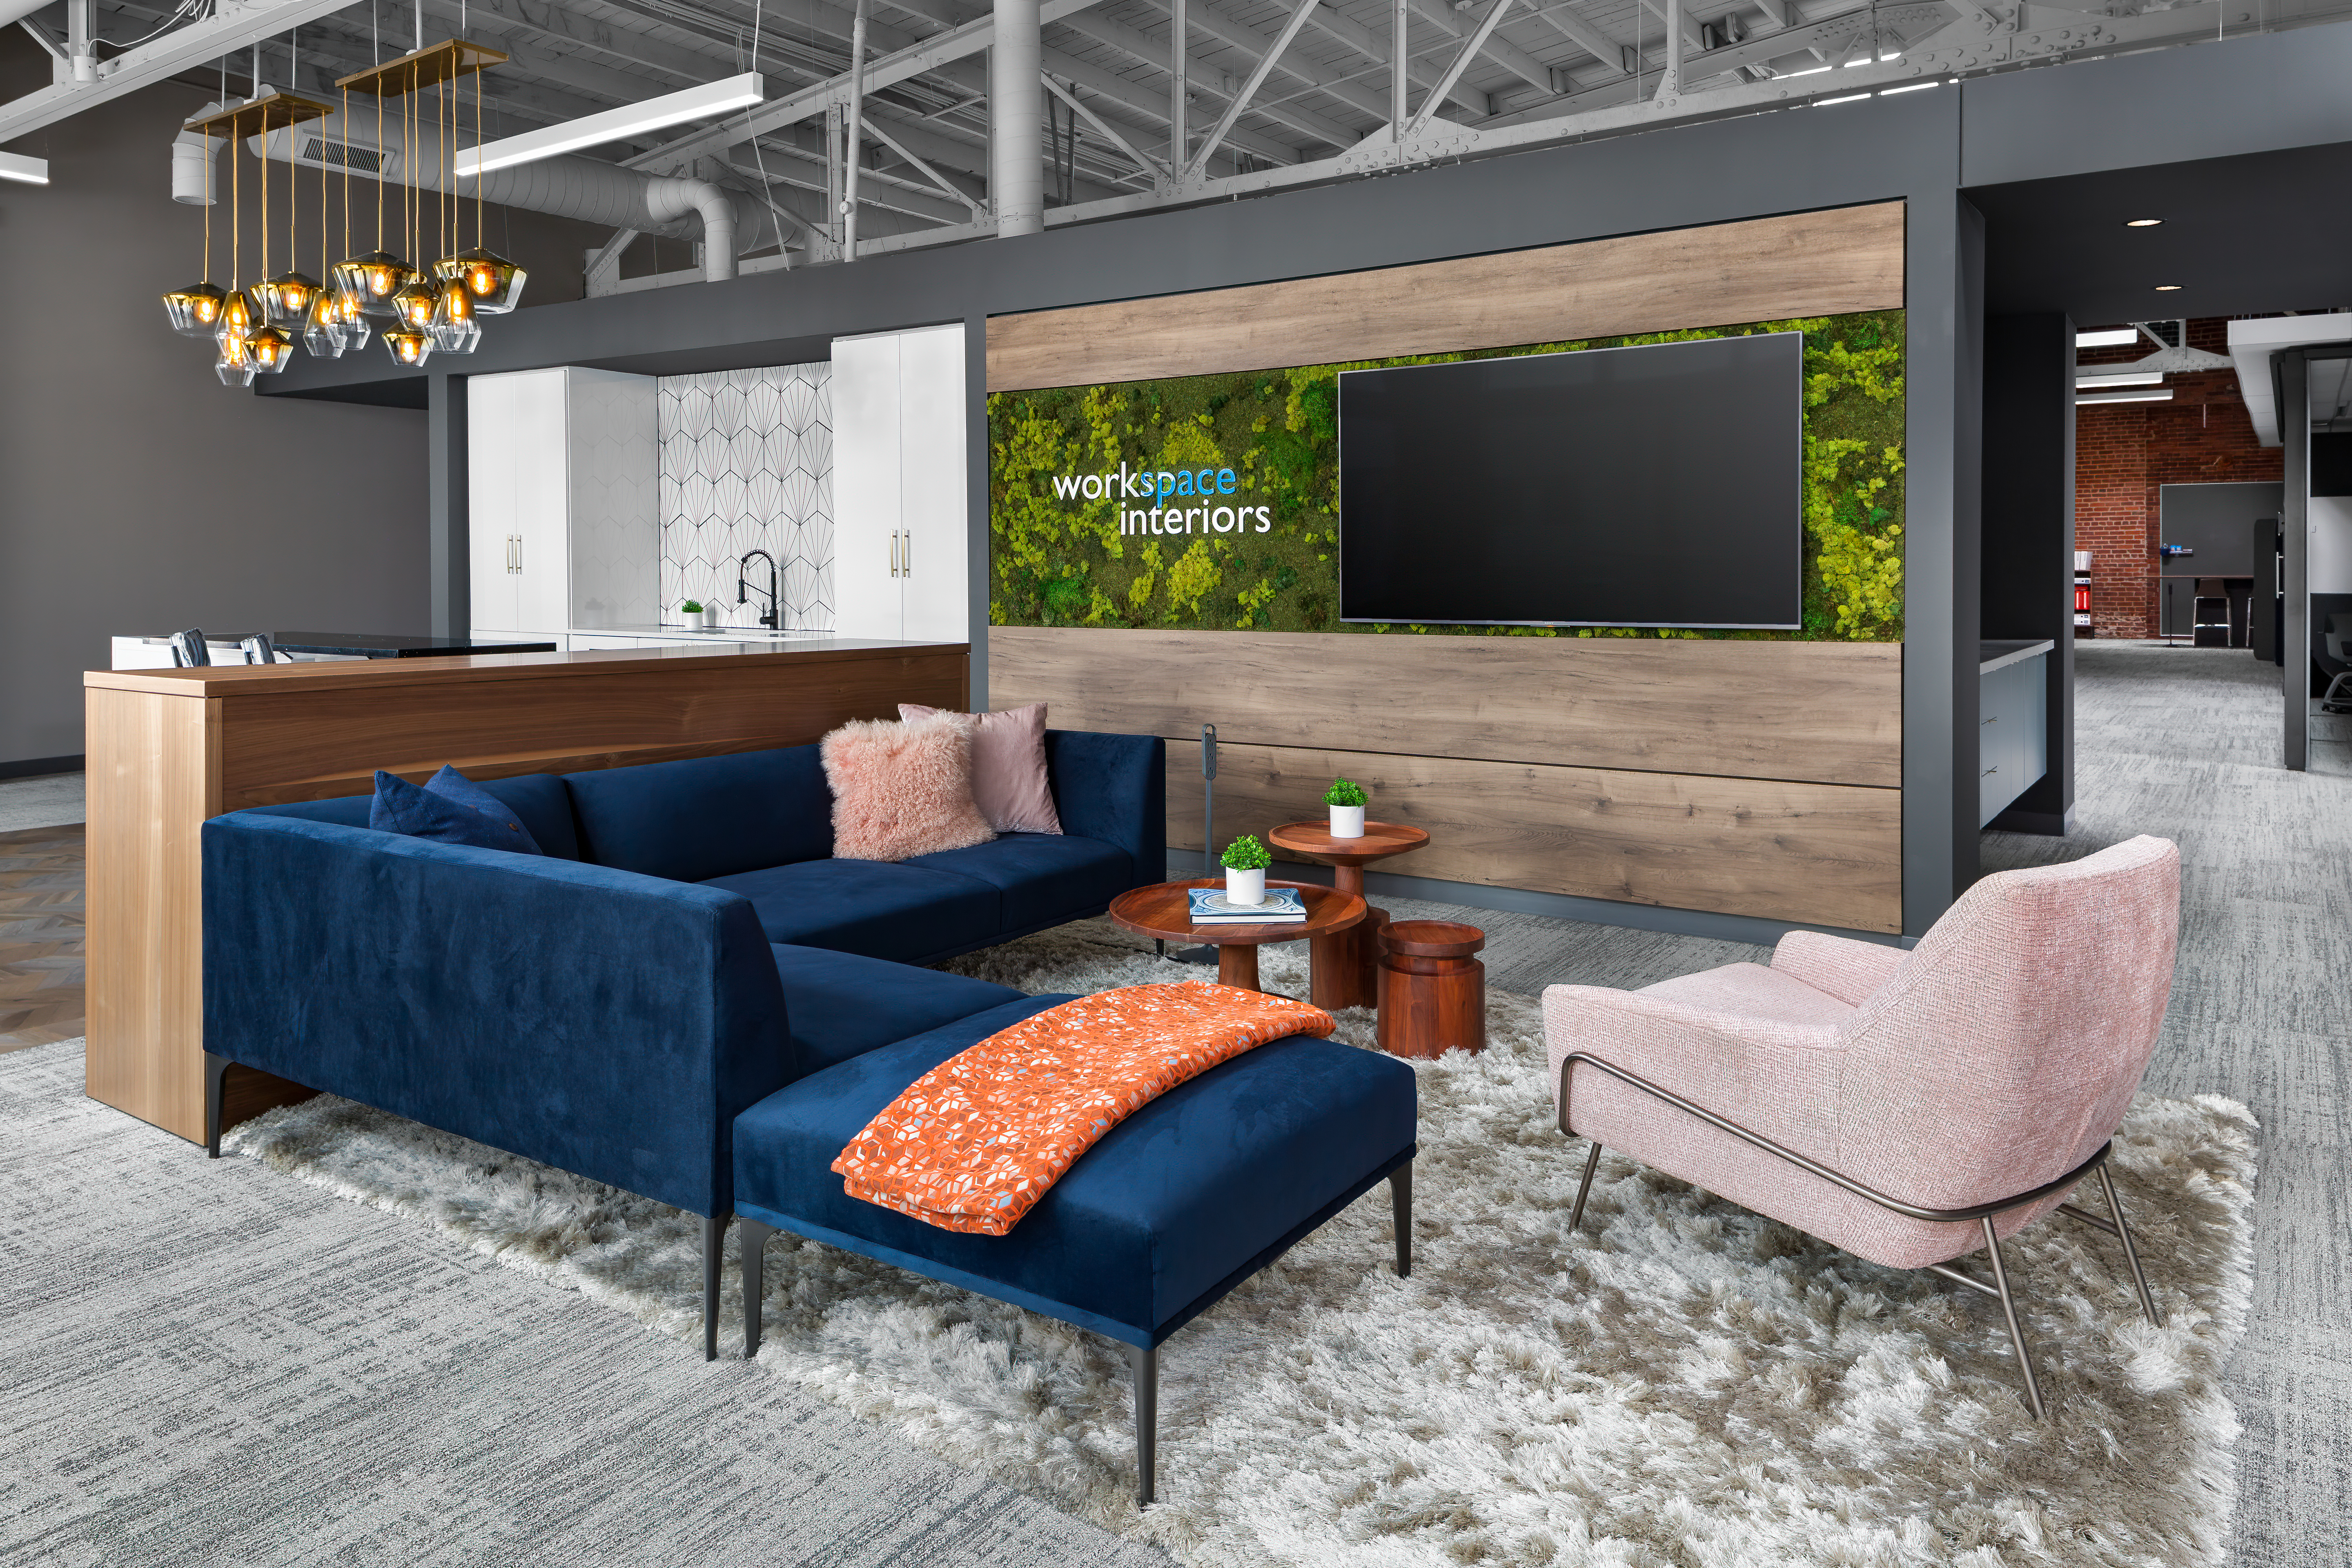 WorkSpace Interiors informal social space with technology